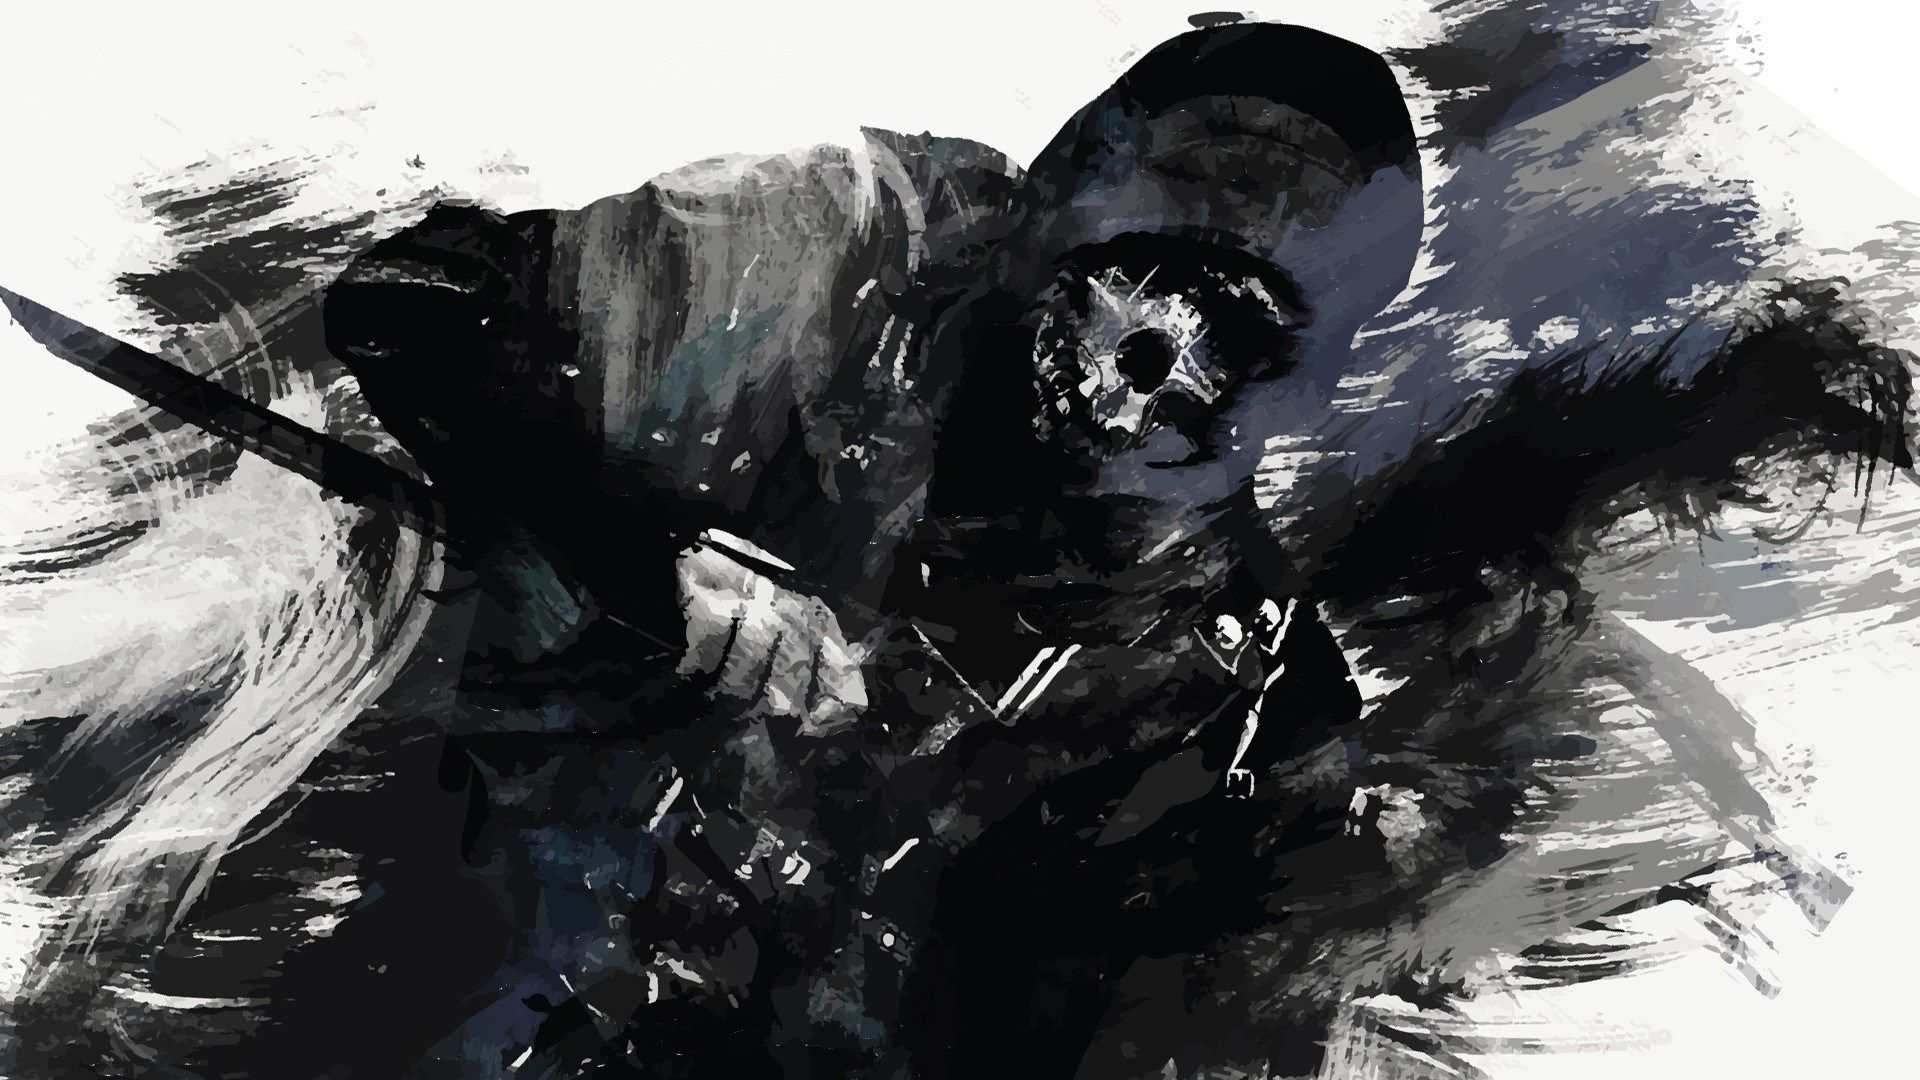 1920x1080 px high resolution wallpapers = dishonored wallpaper